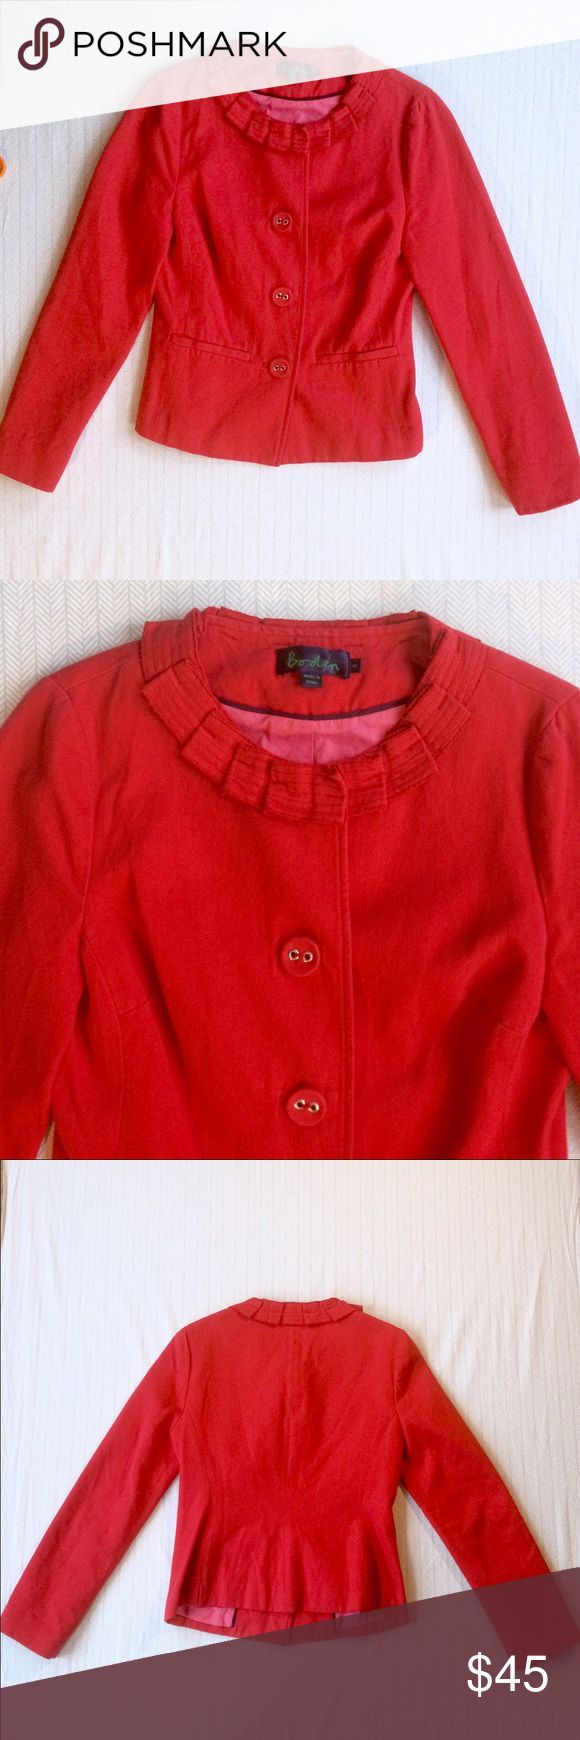 "Boden Jacket Cute jacket from Boden with a ruffled/pleated collar detail. In good used condition with a couple of small snags. Vibrant red is perfect for any season. 16.5"" pit to pit. 22"" from shoulder to hem. Make me an offer. Discount on bundles of two or more. Boden Jackets & Coats"